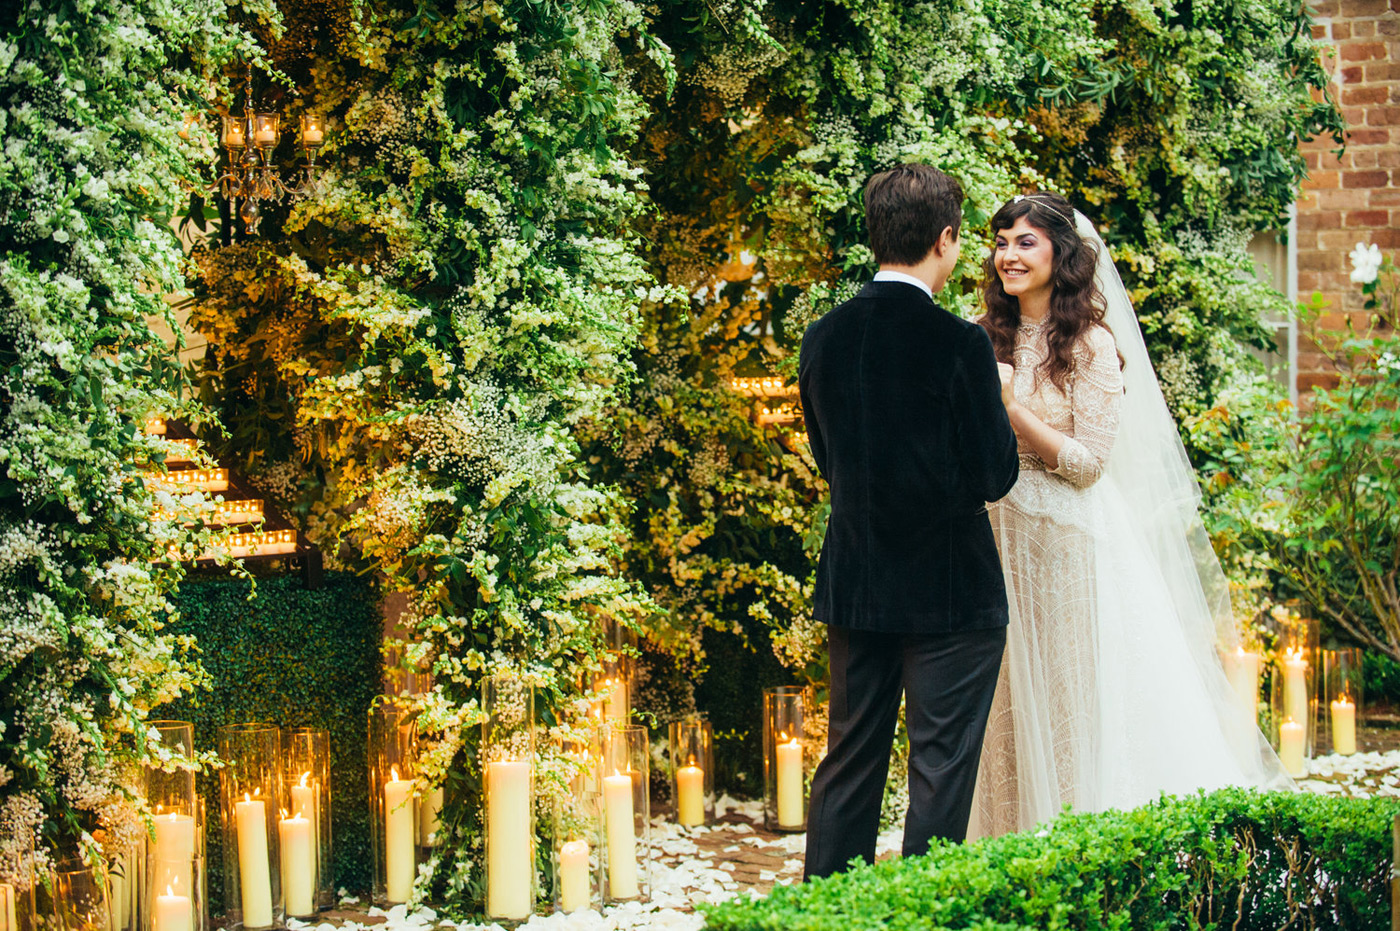 Bride and groom facing each other smiling in front of a luscious greenery back drop and candles on the ground in clear vases